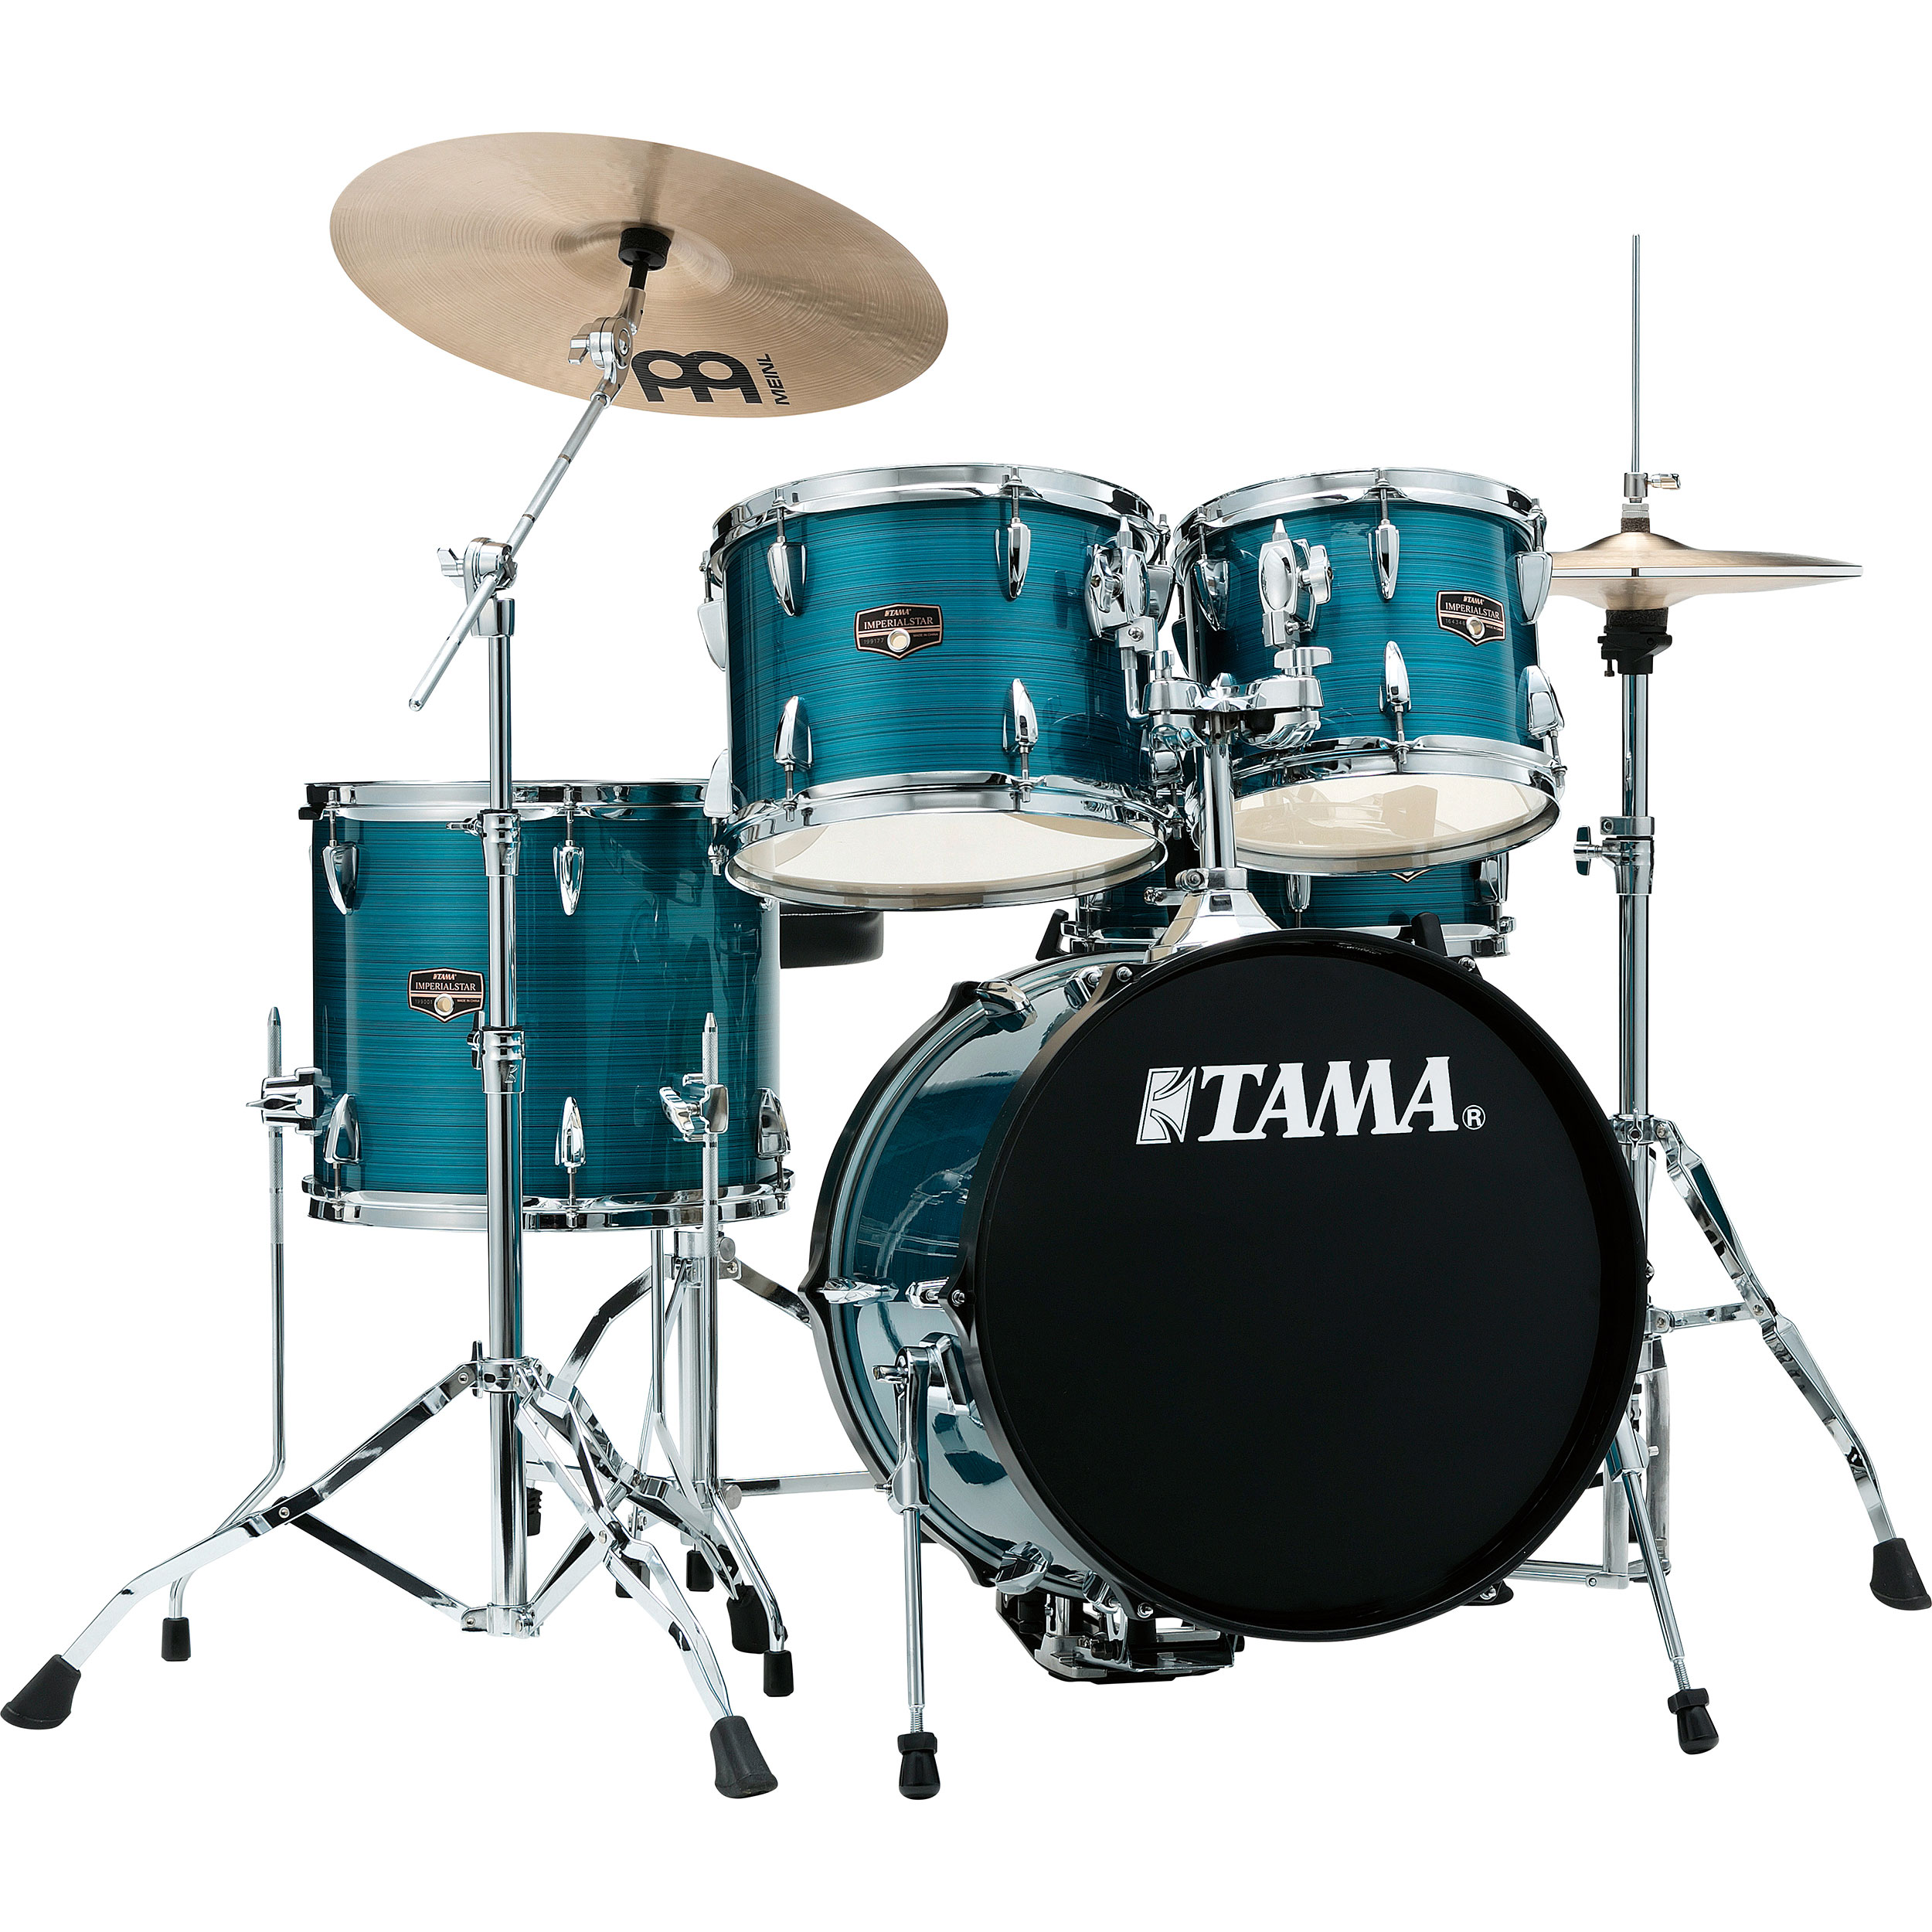 "Tama Imperialstar 5-Piece Drum Set with Hardware and Cymbals (18"" Bass, 10/12/14"" Toms, 14"" Snare)"